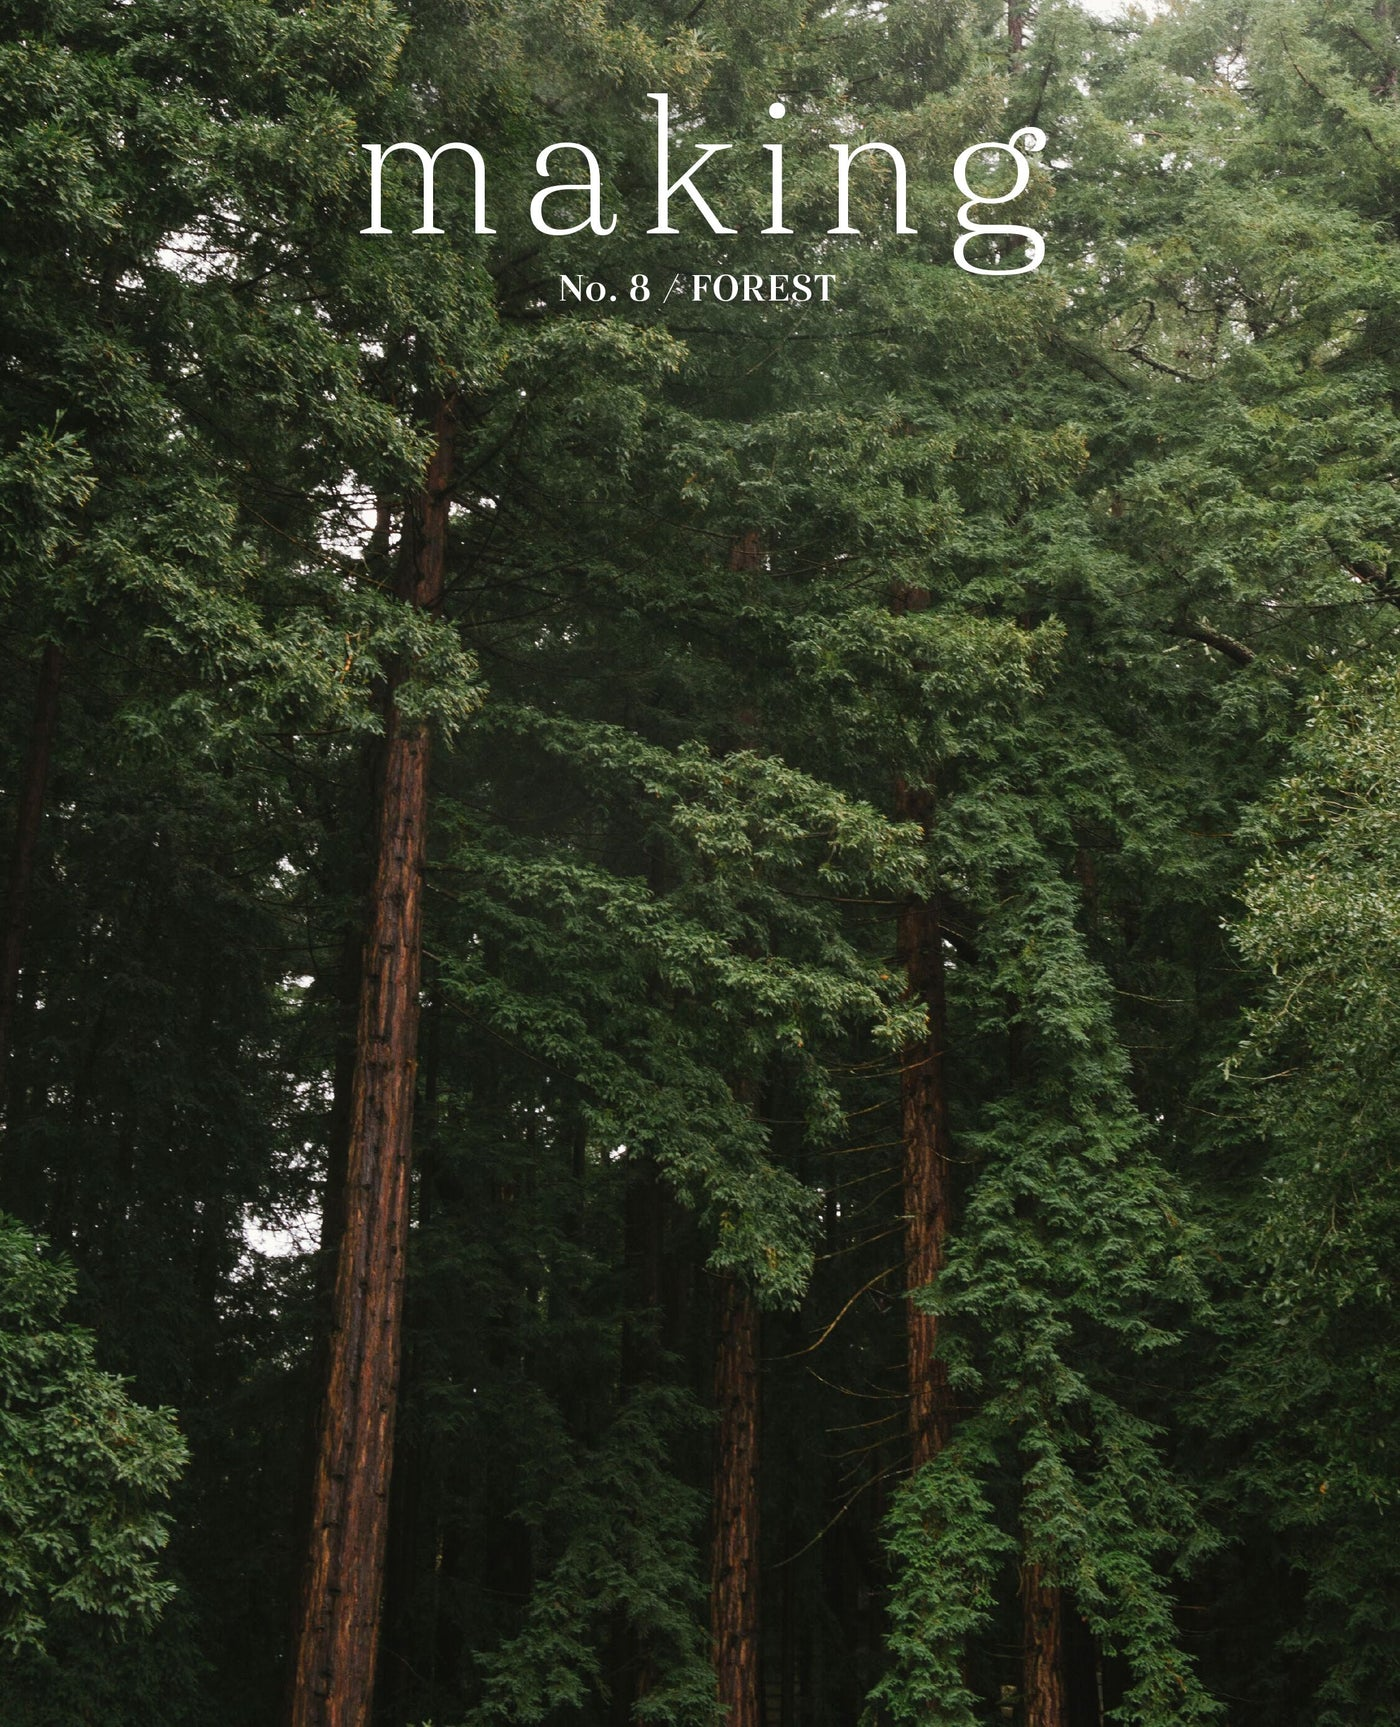 Making Magazine No. 8 / Forest (Pre-Order) with Woodland Bookmark